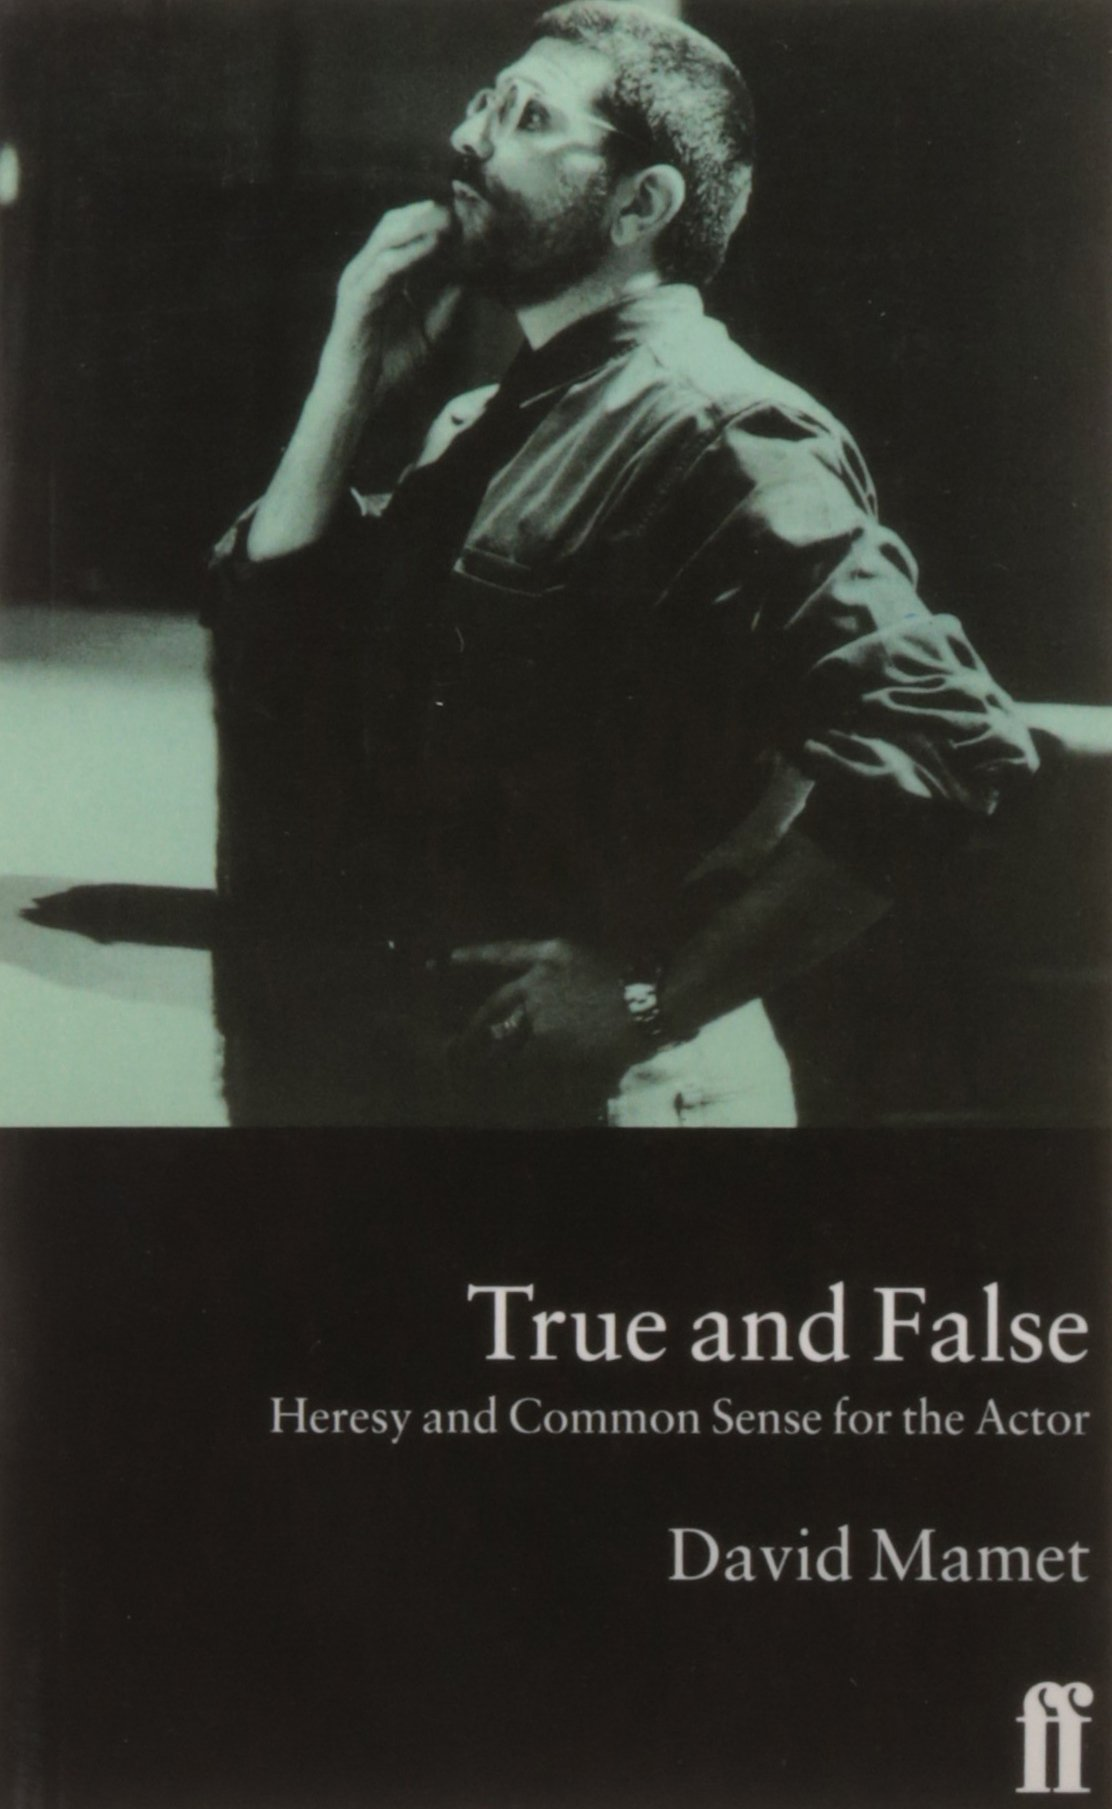 a whore s profession notes and essays co uk david mamet true and false heresy and common sense for the actor